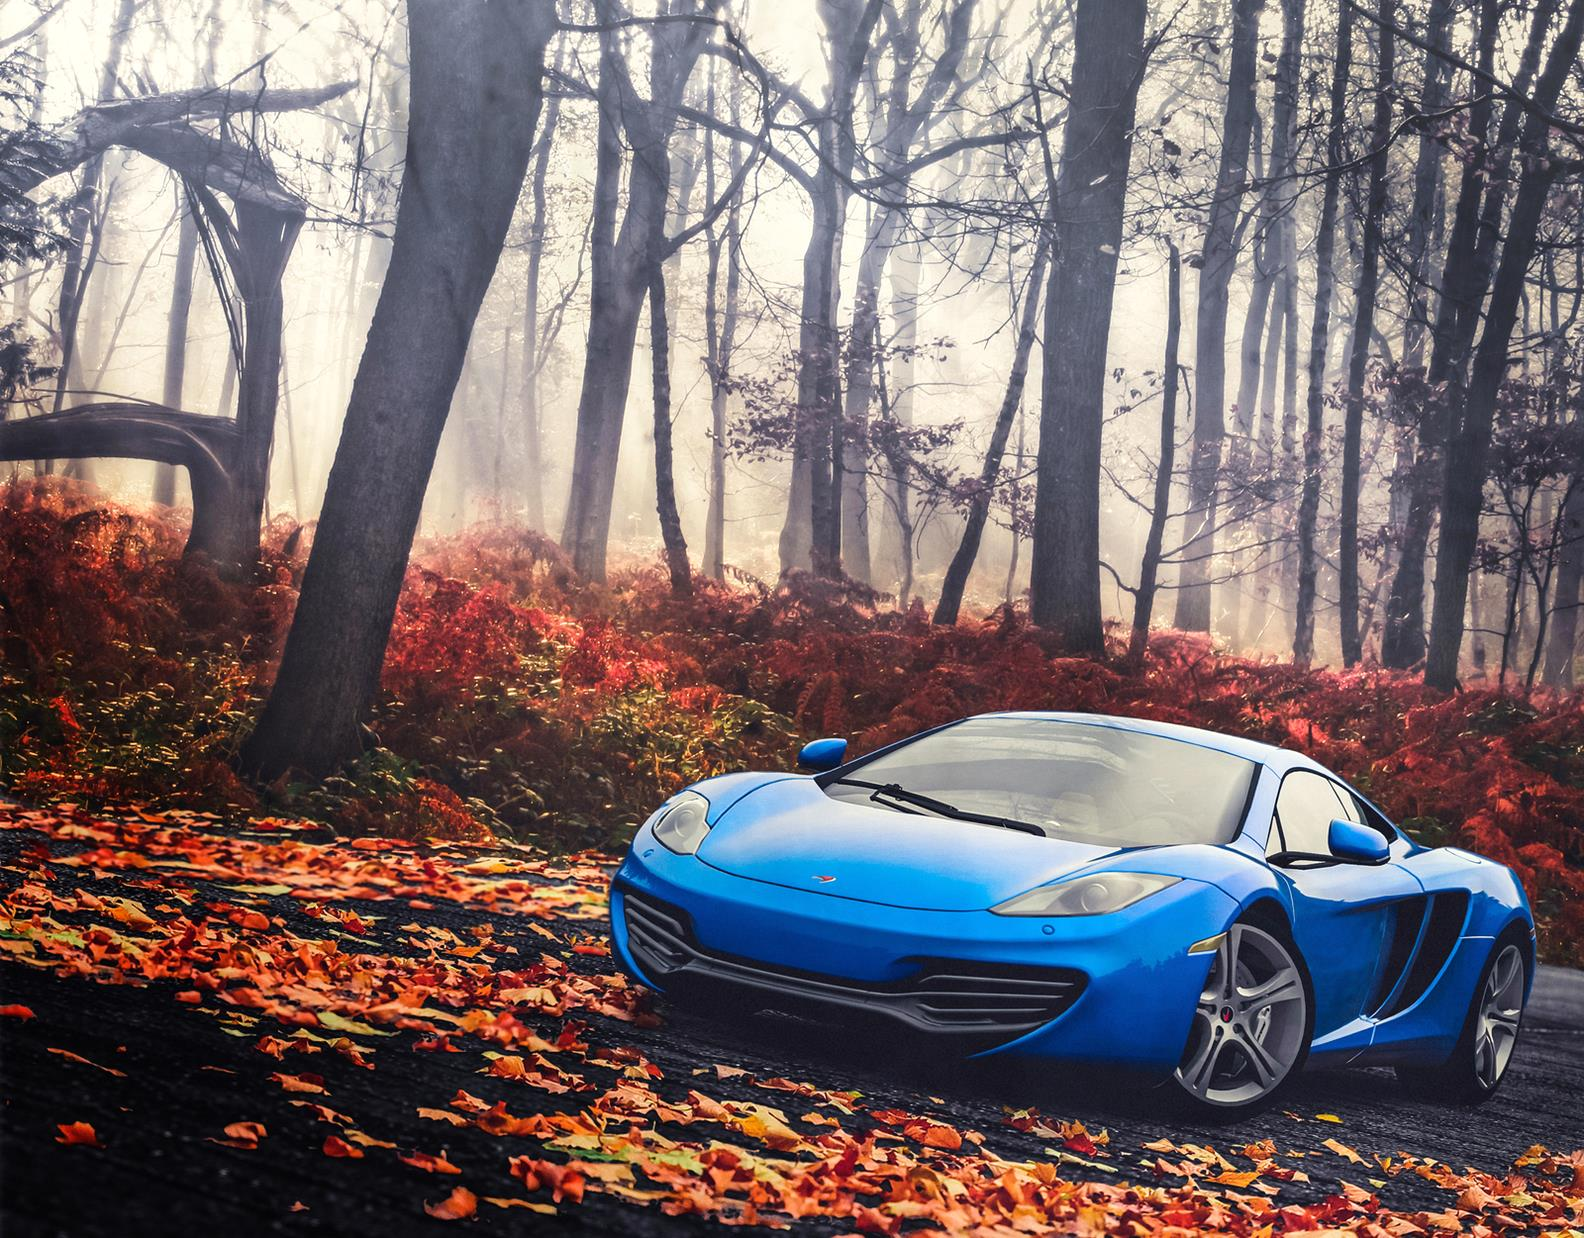 mclaren-2-stunning car pictures